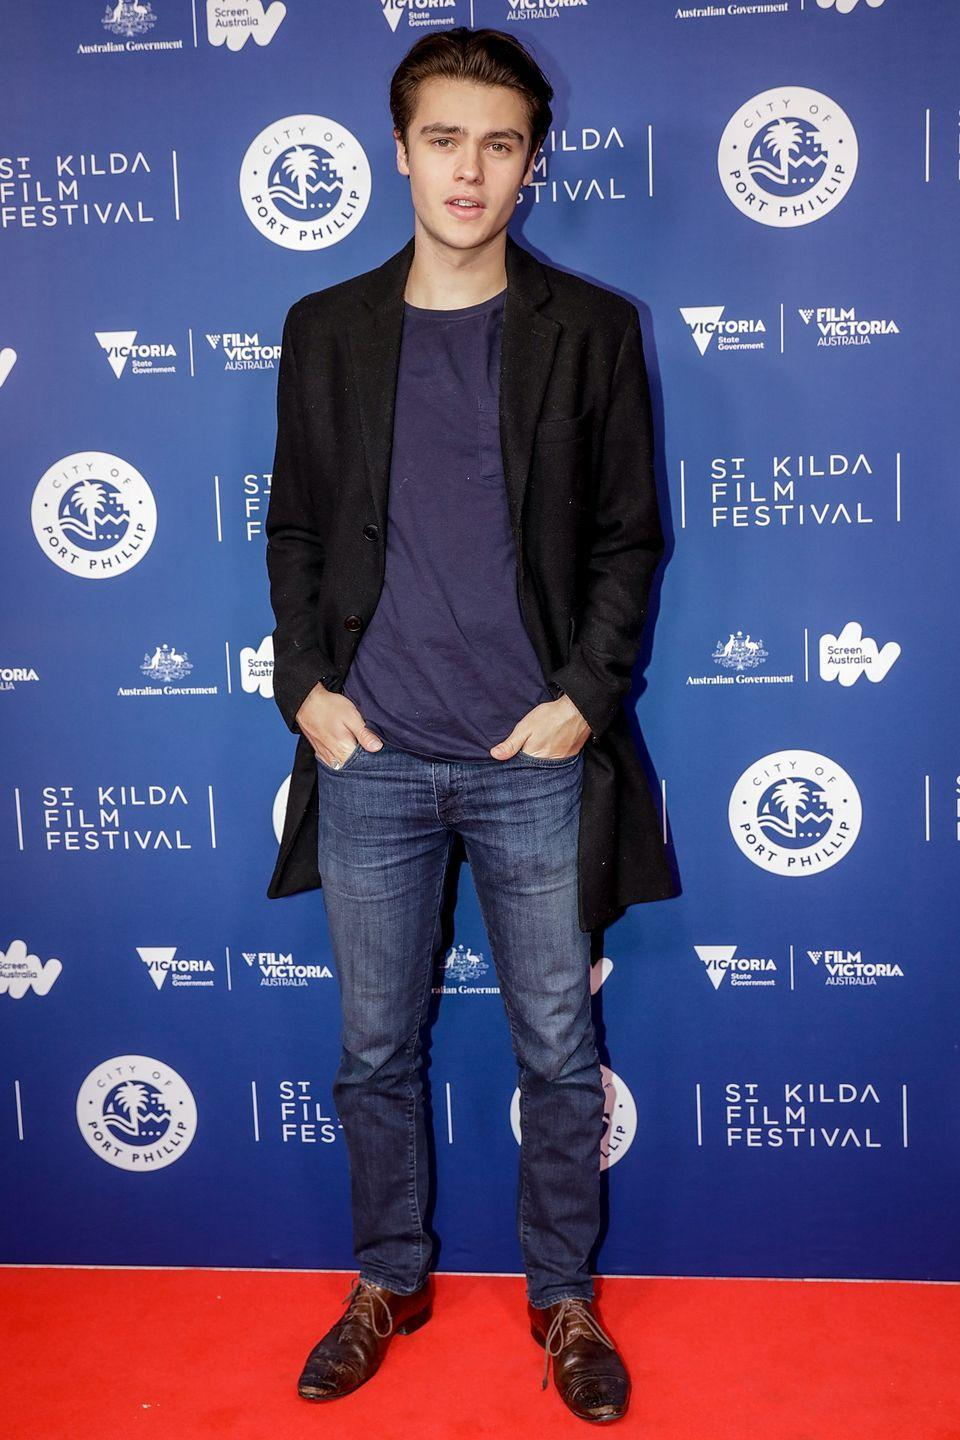 <p>You might recognize Mallard for his roles on <em>Happy Together</em> and <em>Locke and Key</em>, but Australians are definitely familiar with the Melbourne native from his work on the soap opera <em>Neighbours</em>. <br></p>